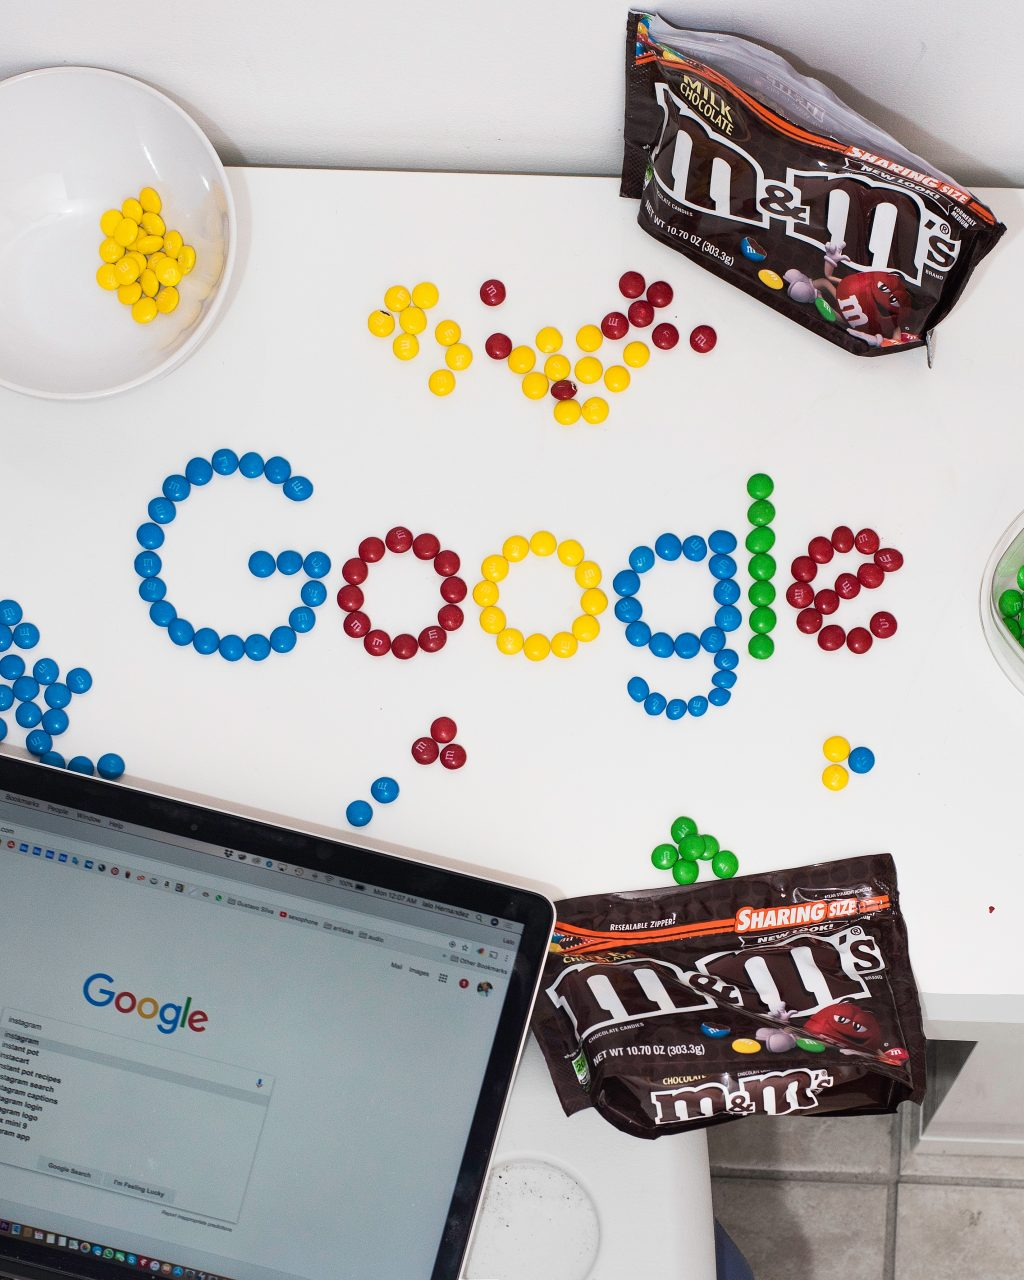 9 Great Search Engine Optimization (SEO) Tips Are All You'll Ever Need to Rank in Google